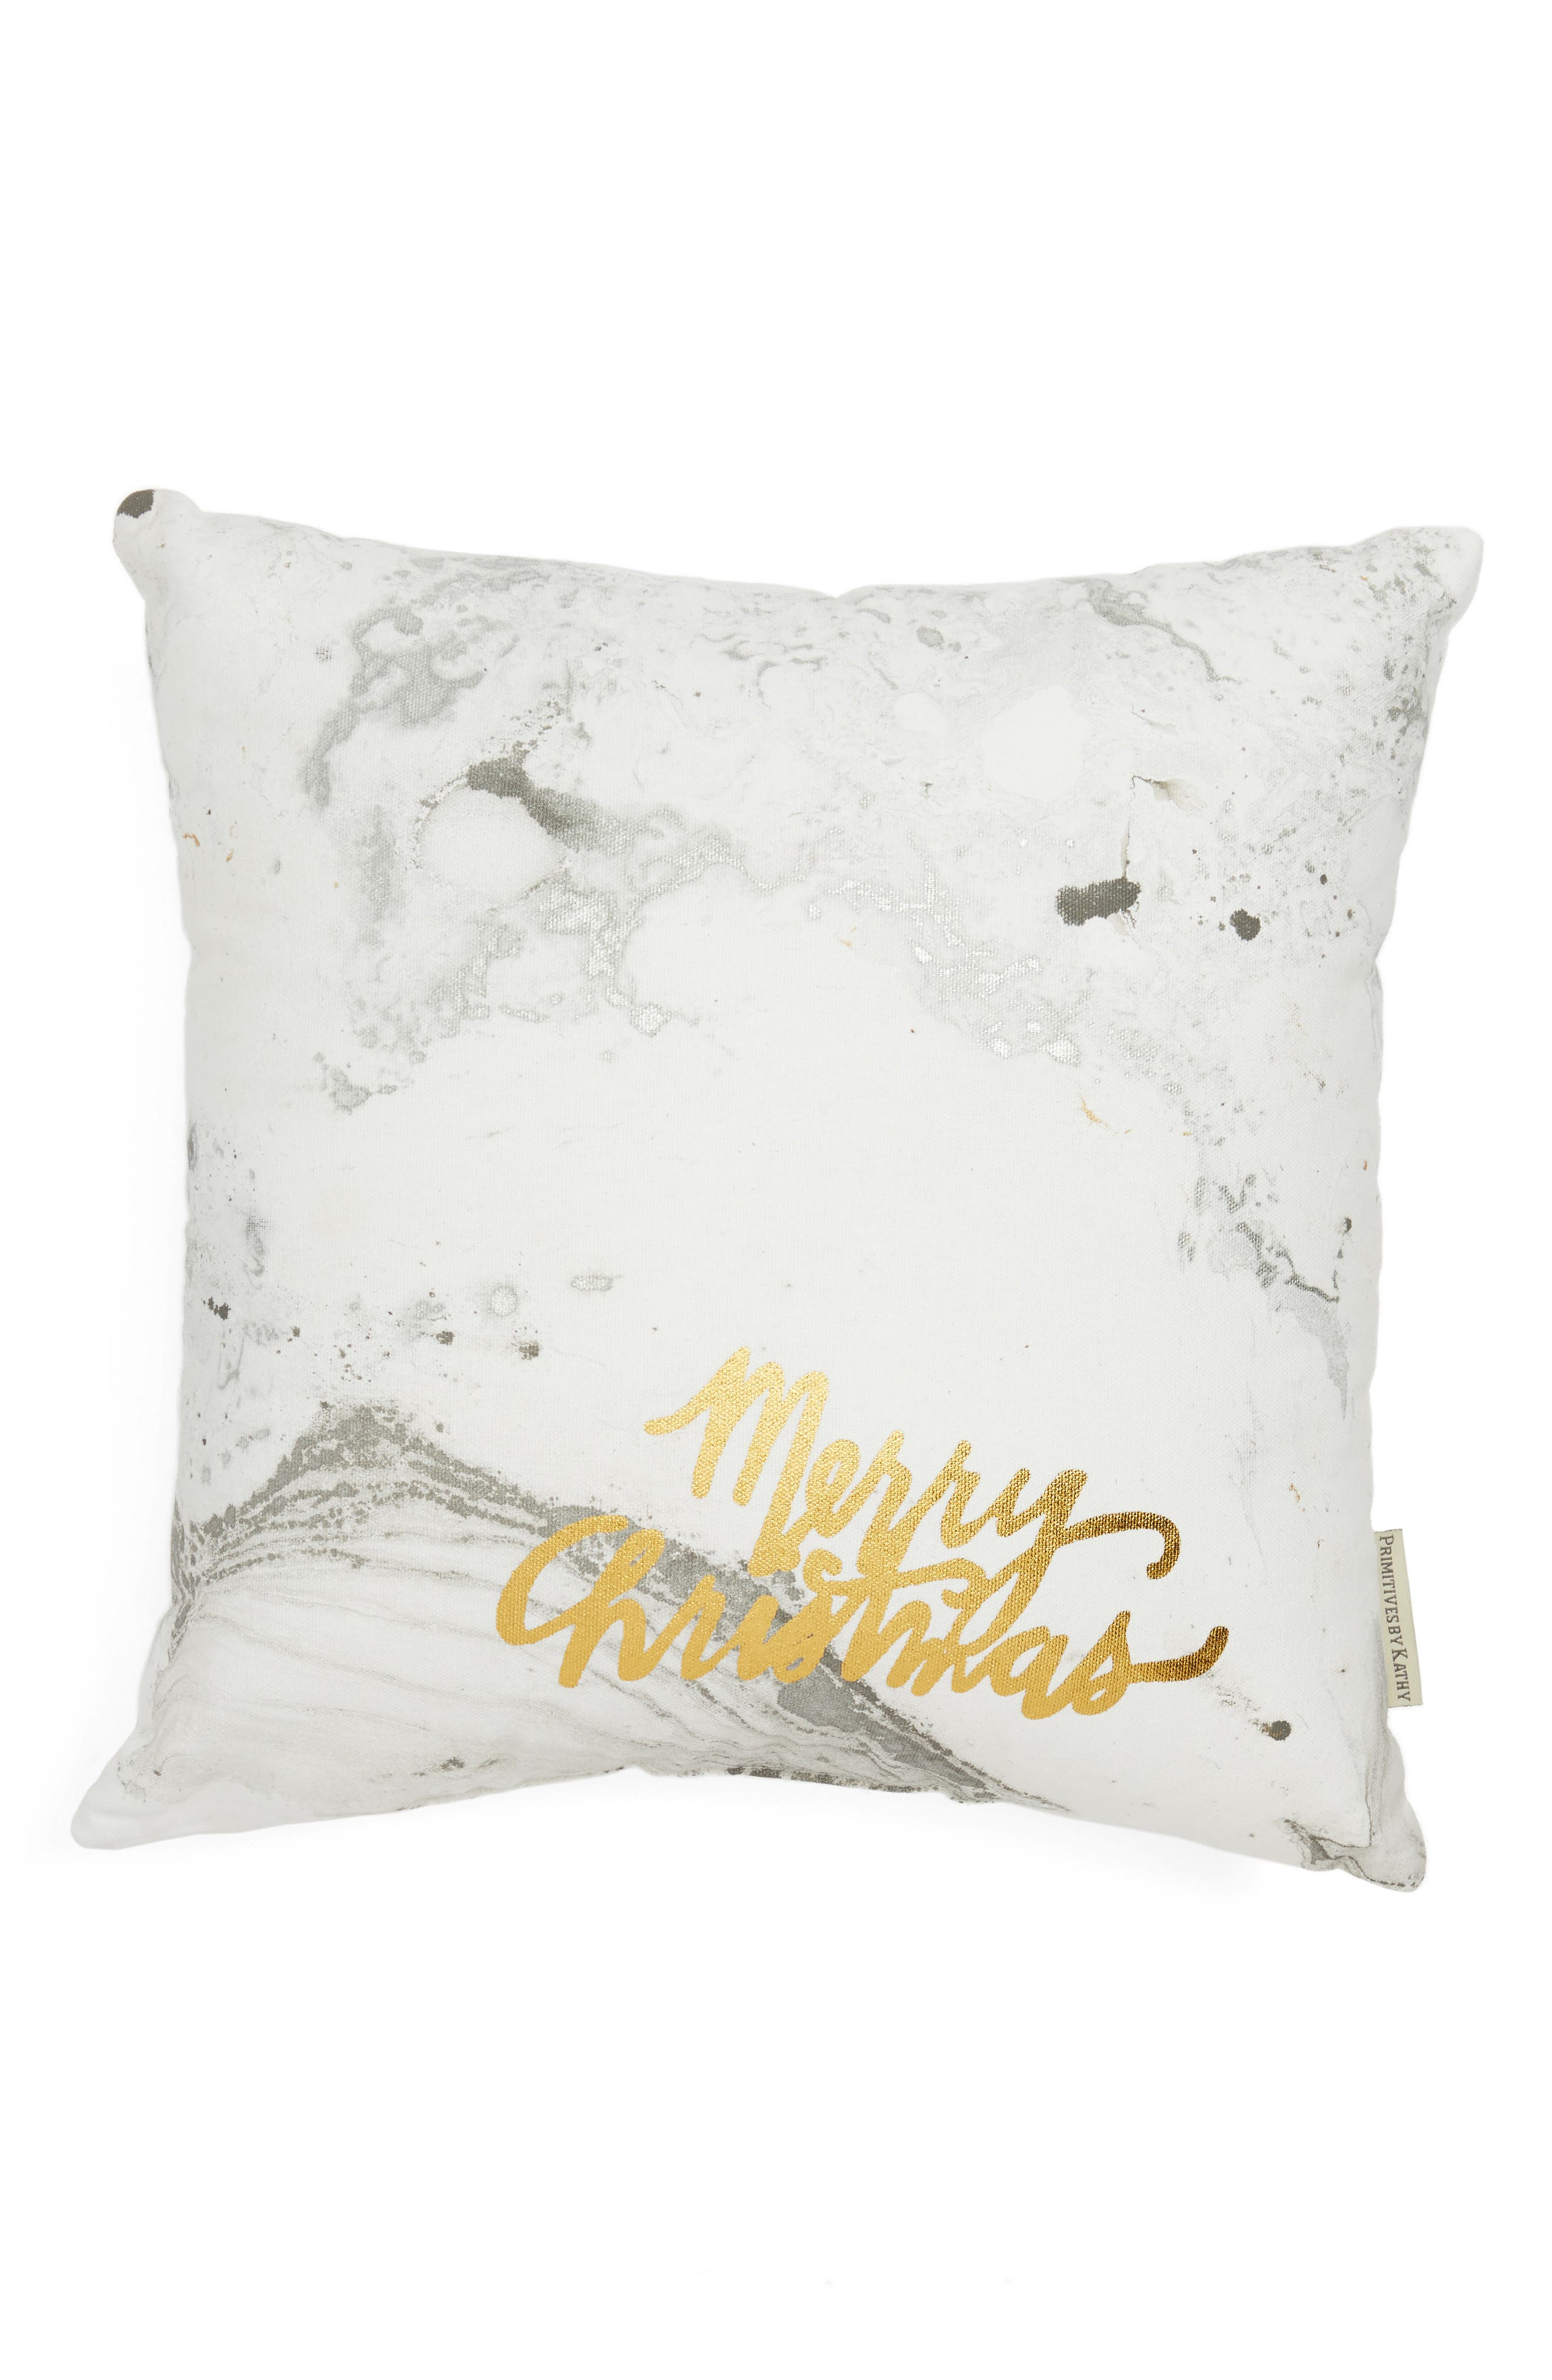 Merry Christmas Accent Pillow,                         Main,                         color, Grey